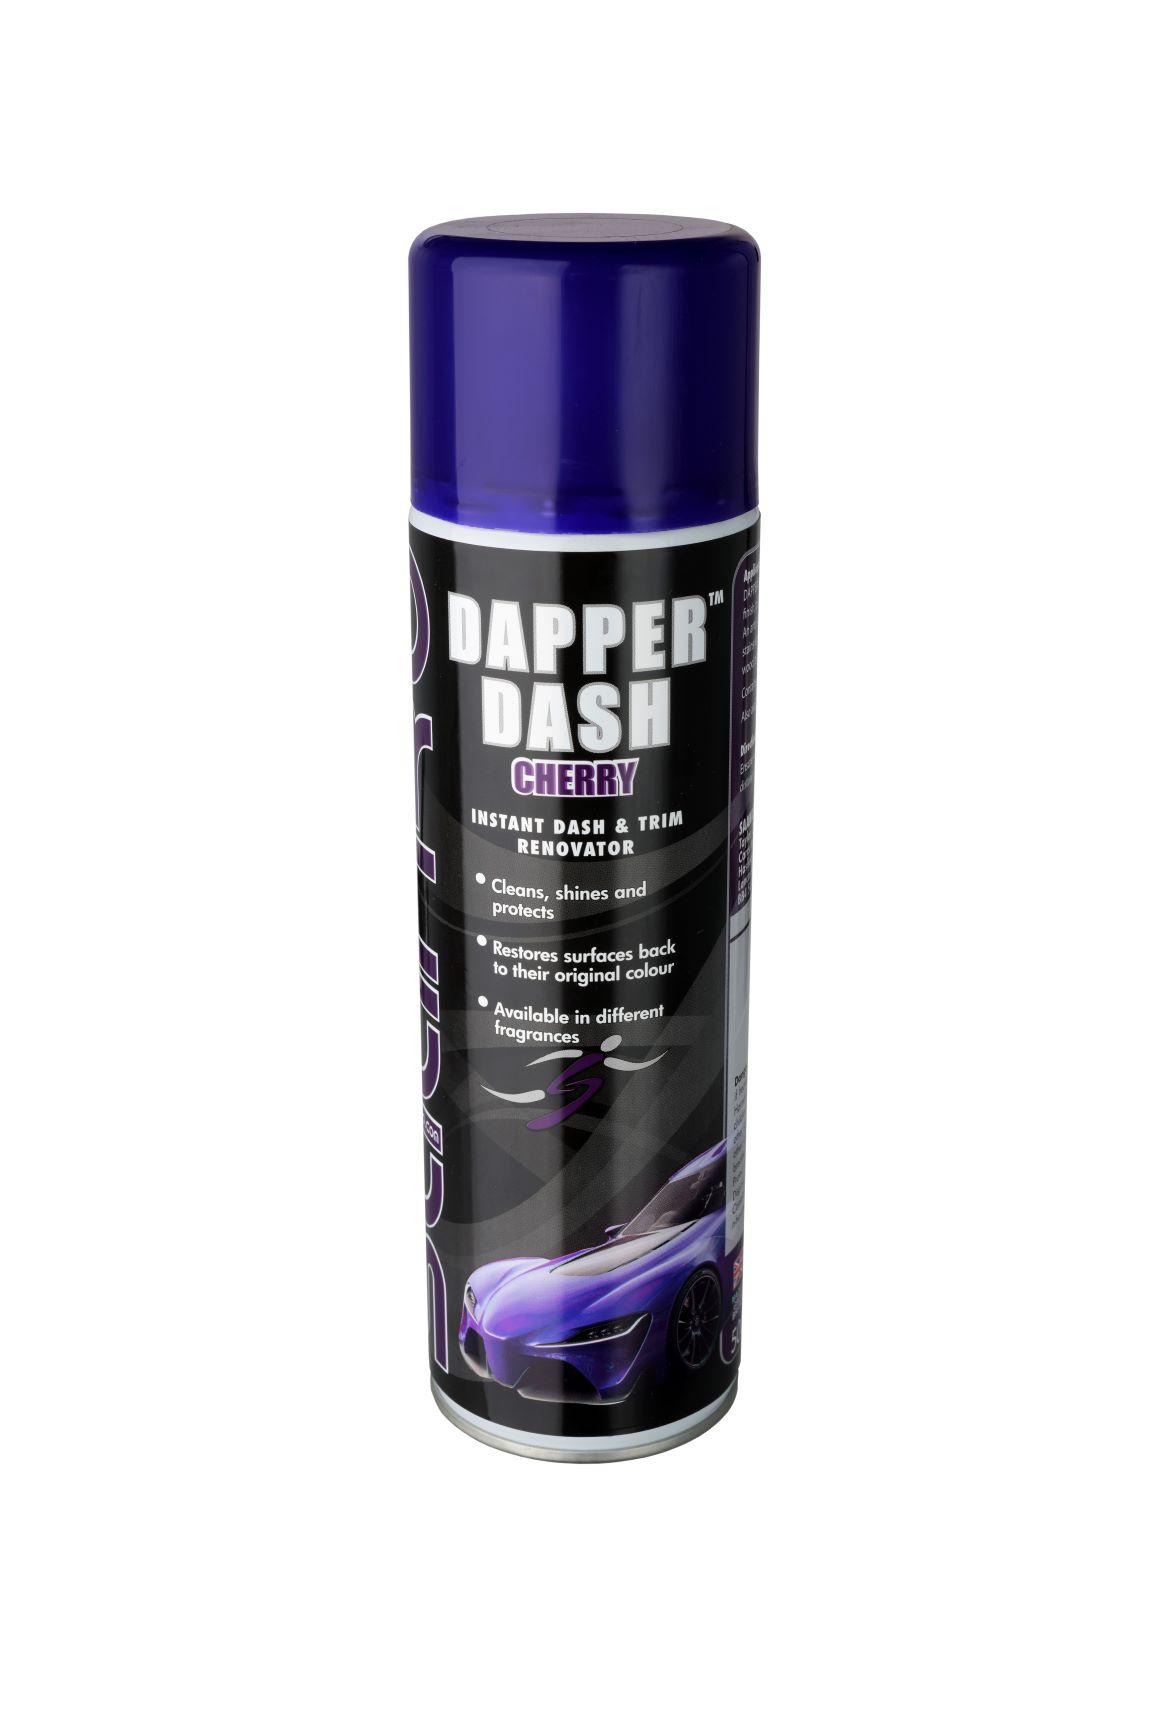 Saanro Dapper Dash Cherry 500ML